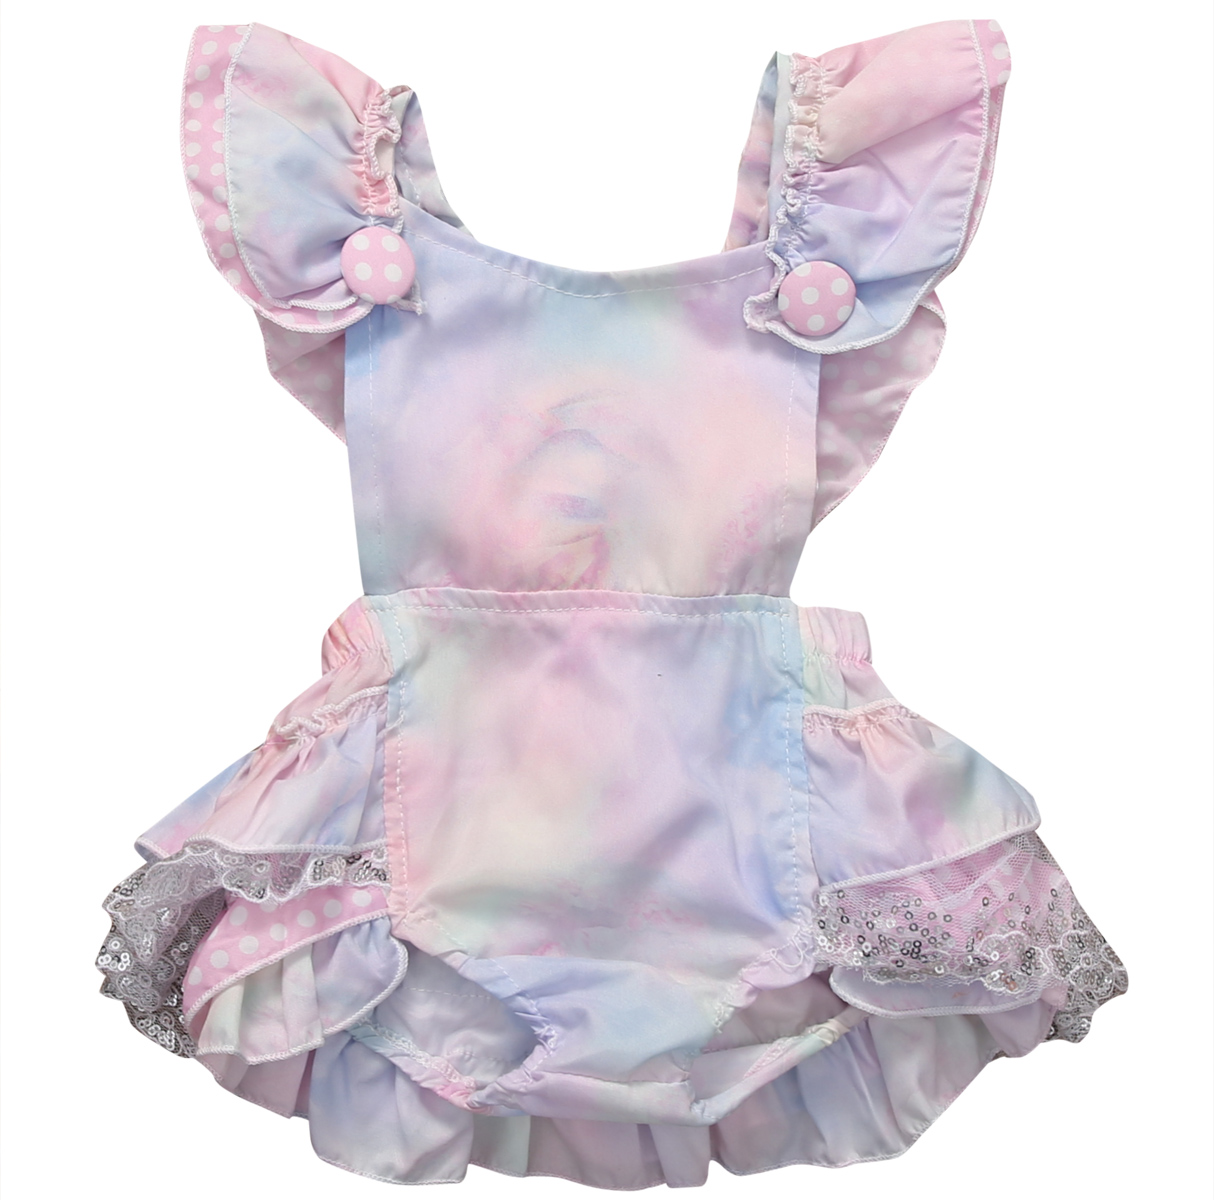 Lace Floral Newborn Baby Girls Criss Cross Back Romper Ruffles Jumpsuit Sunsuit One-Pieces Outfits Clothes 0-3Y 2017 floral baby girl clothes summer sleeveless flower romper bodysuit ruffles halter jumpsuit headband 2pcs outfits sunsuit